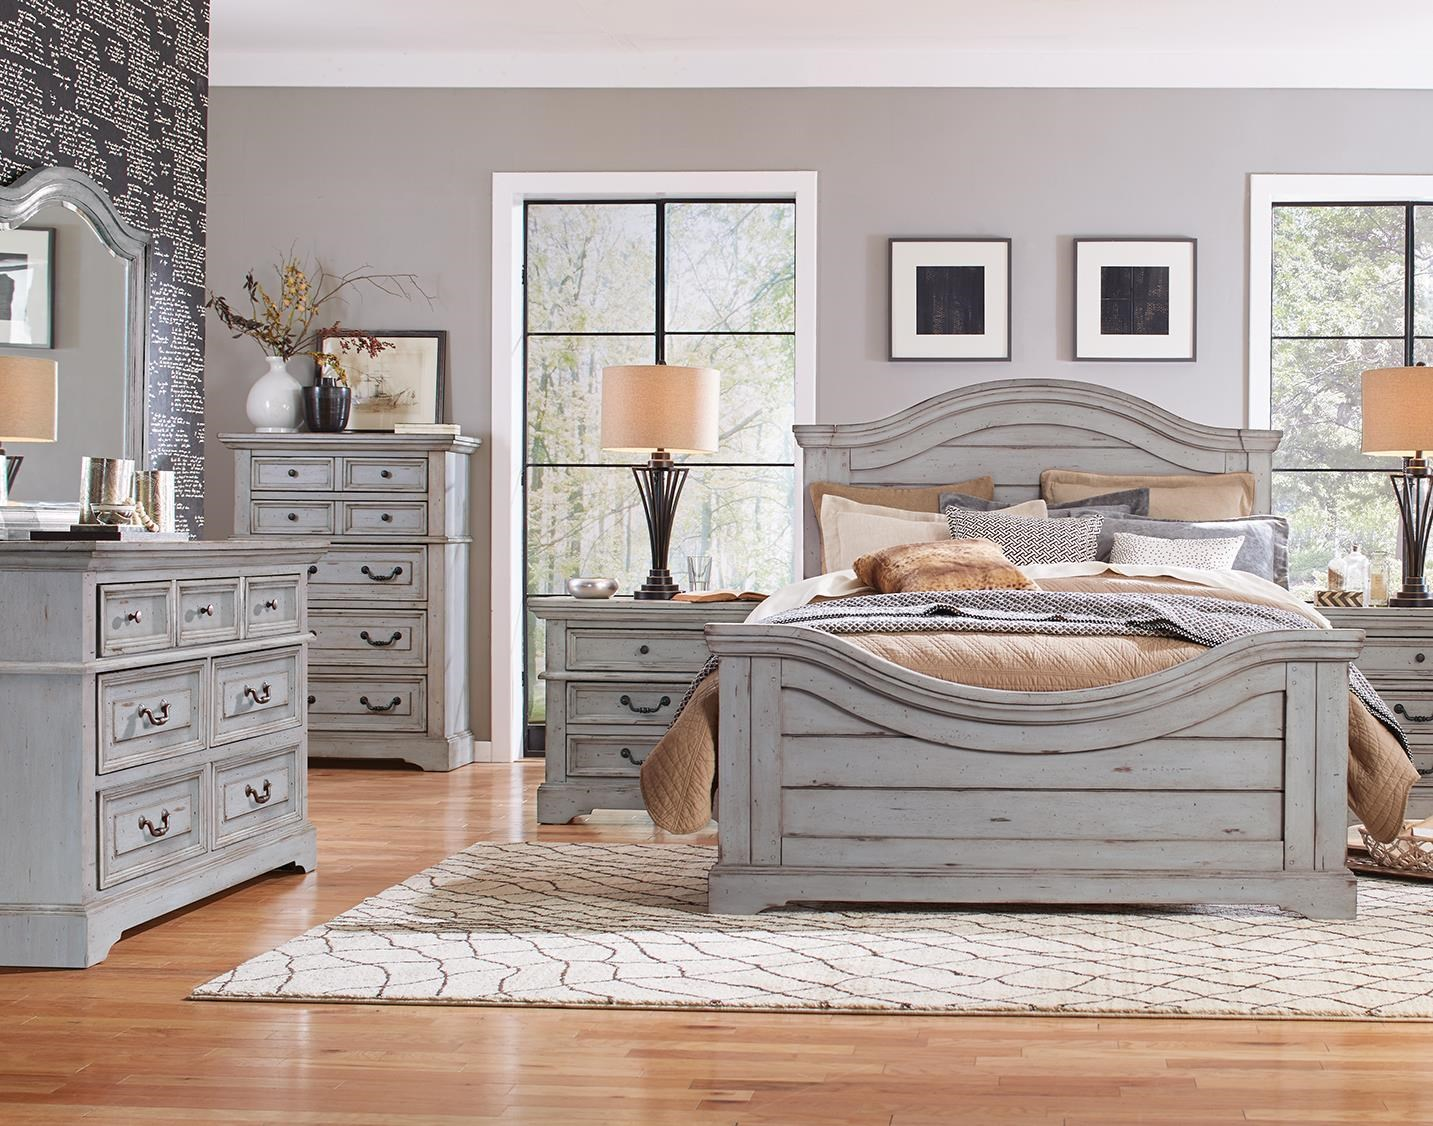 American Woodcrafters Stonebrook in Antique Gray Dresser - Item Number: 7820-270